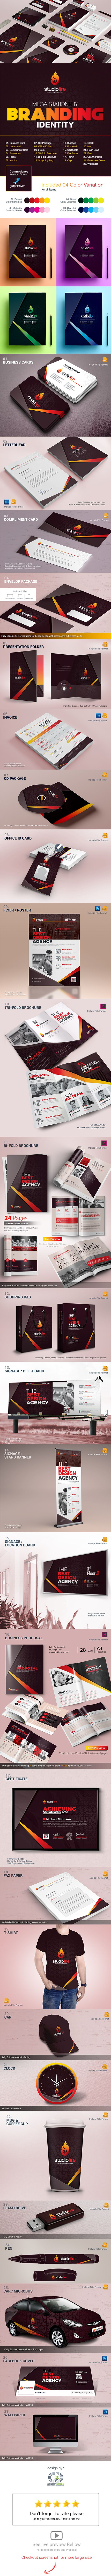 StudioFire is very powerfull complete business branding for any kind of corporate agency, multipurpose company. It will save your expense & many times. It is fully editable & customizable to your own choices.